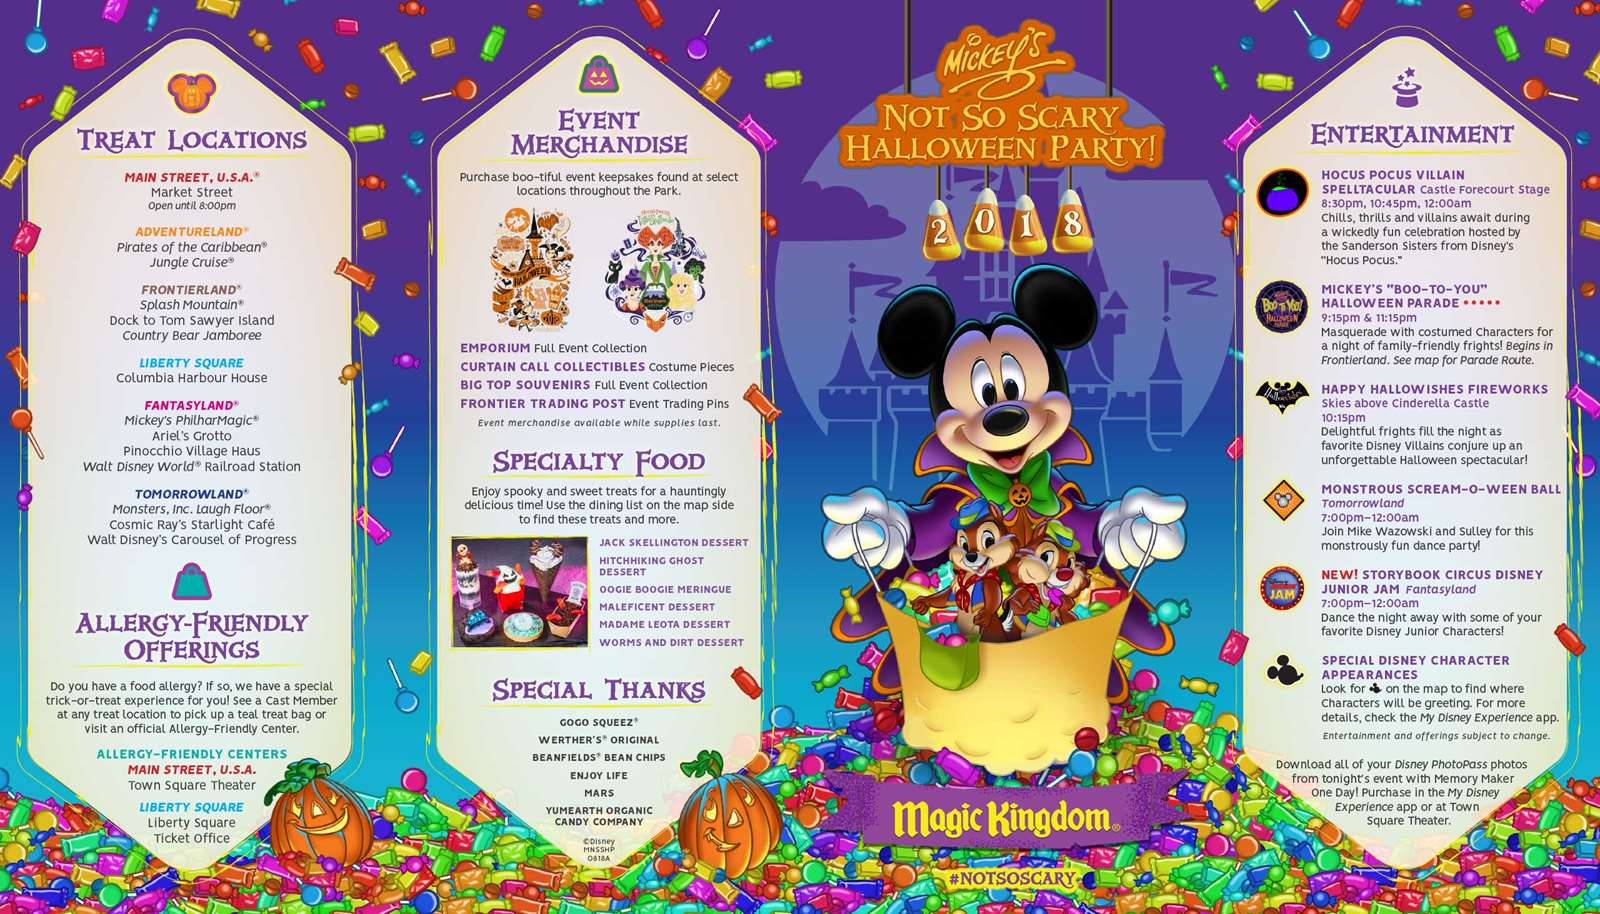 Mickey Mouse Not So Scary Halloween Map 2020 Mickey's Not So Scary Halloween Party 2018 guide map   Photo 1 of 2